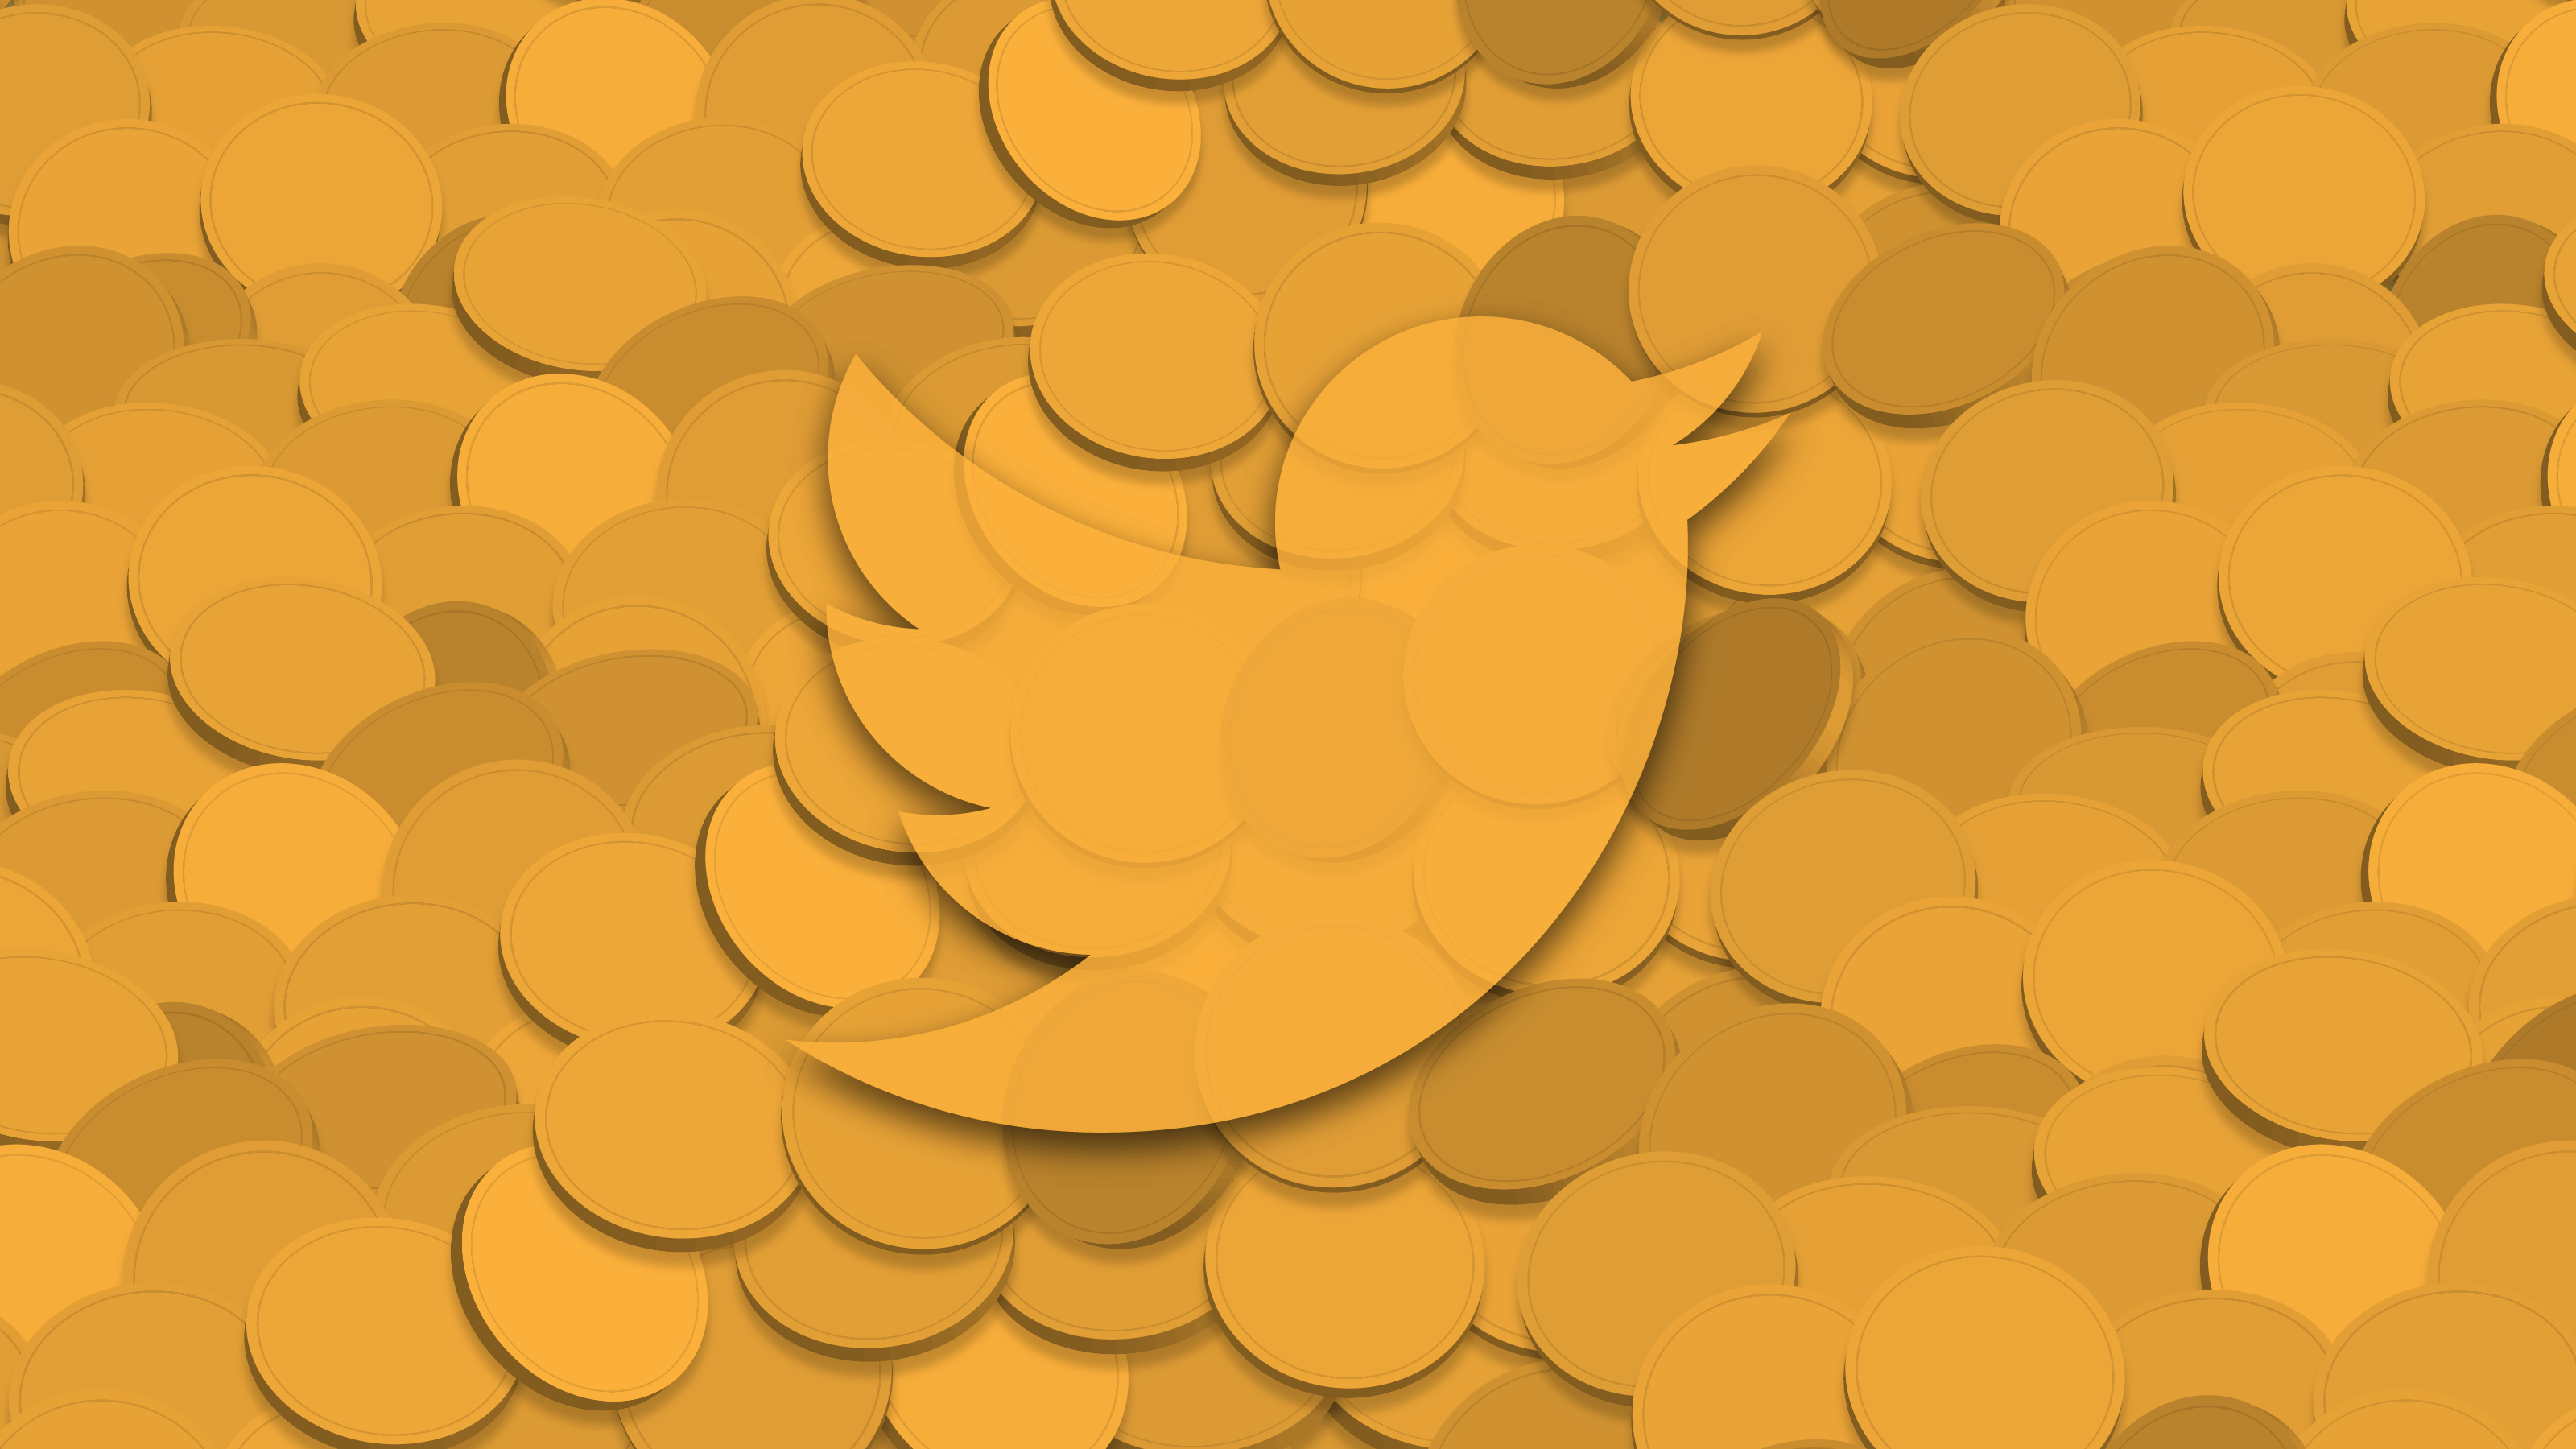 Twitter announces a ban on cryptocurrency ads